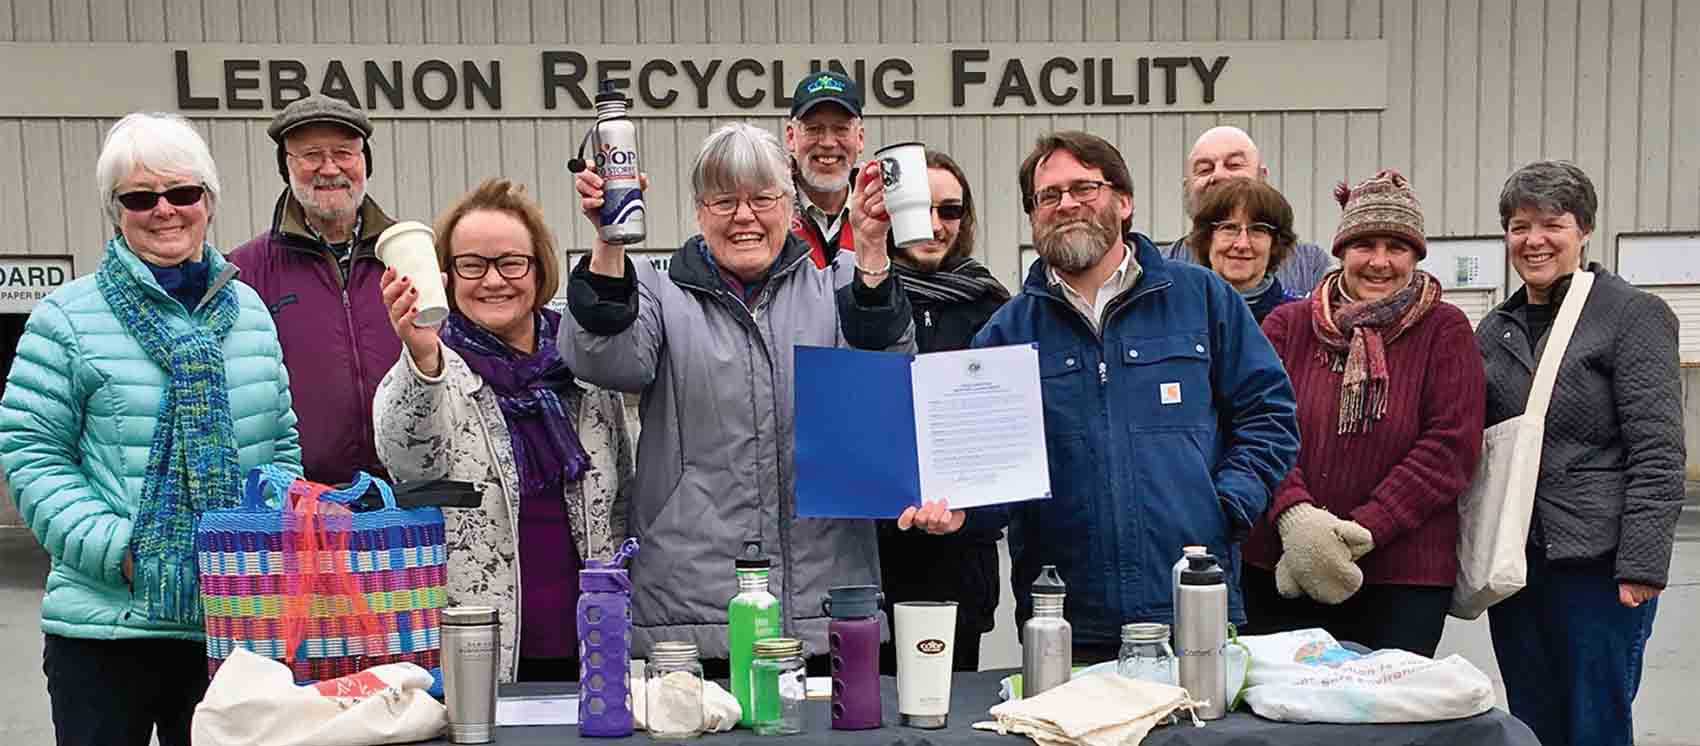 Lebanon mayor's proclamation ceremony at Lebanon's Recycling Facility